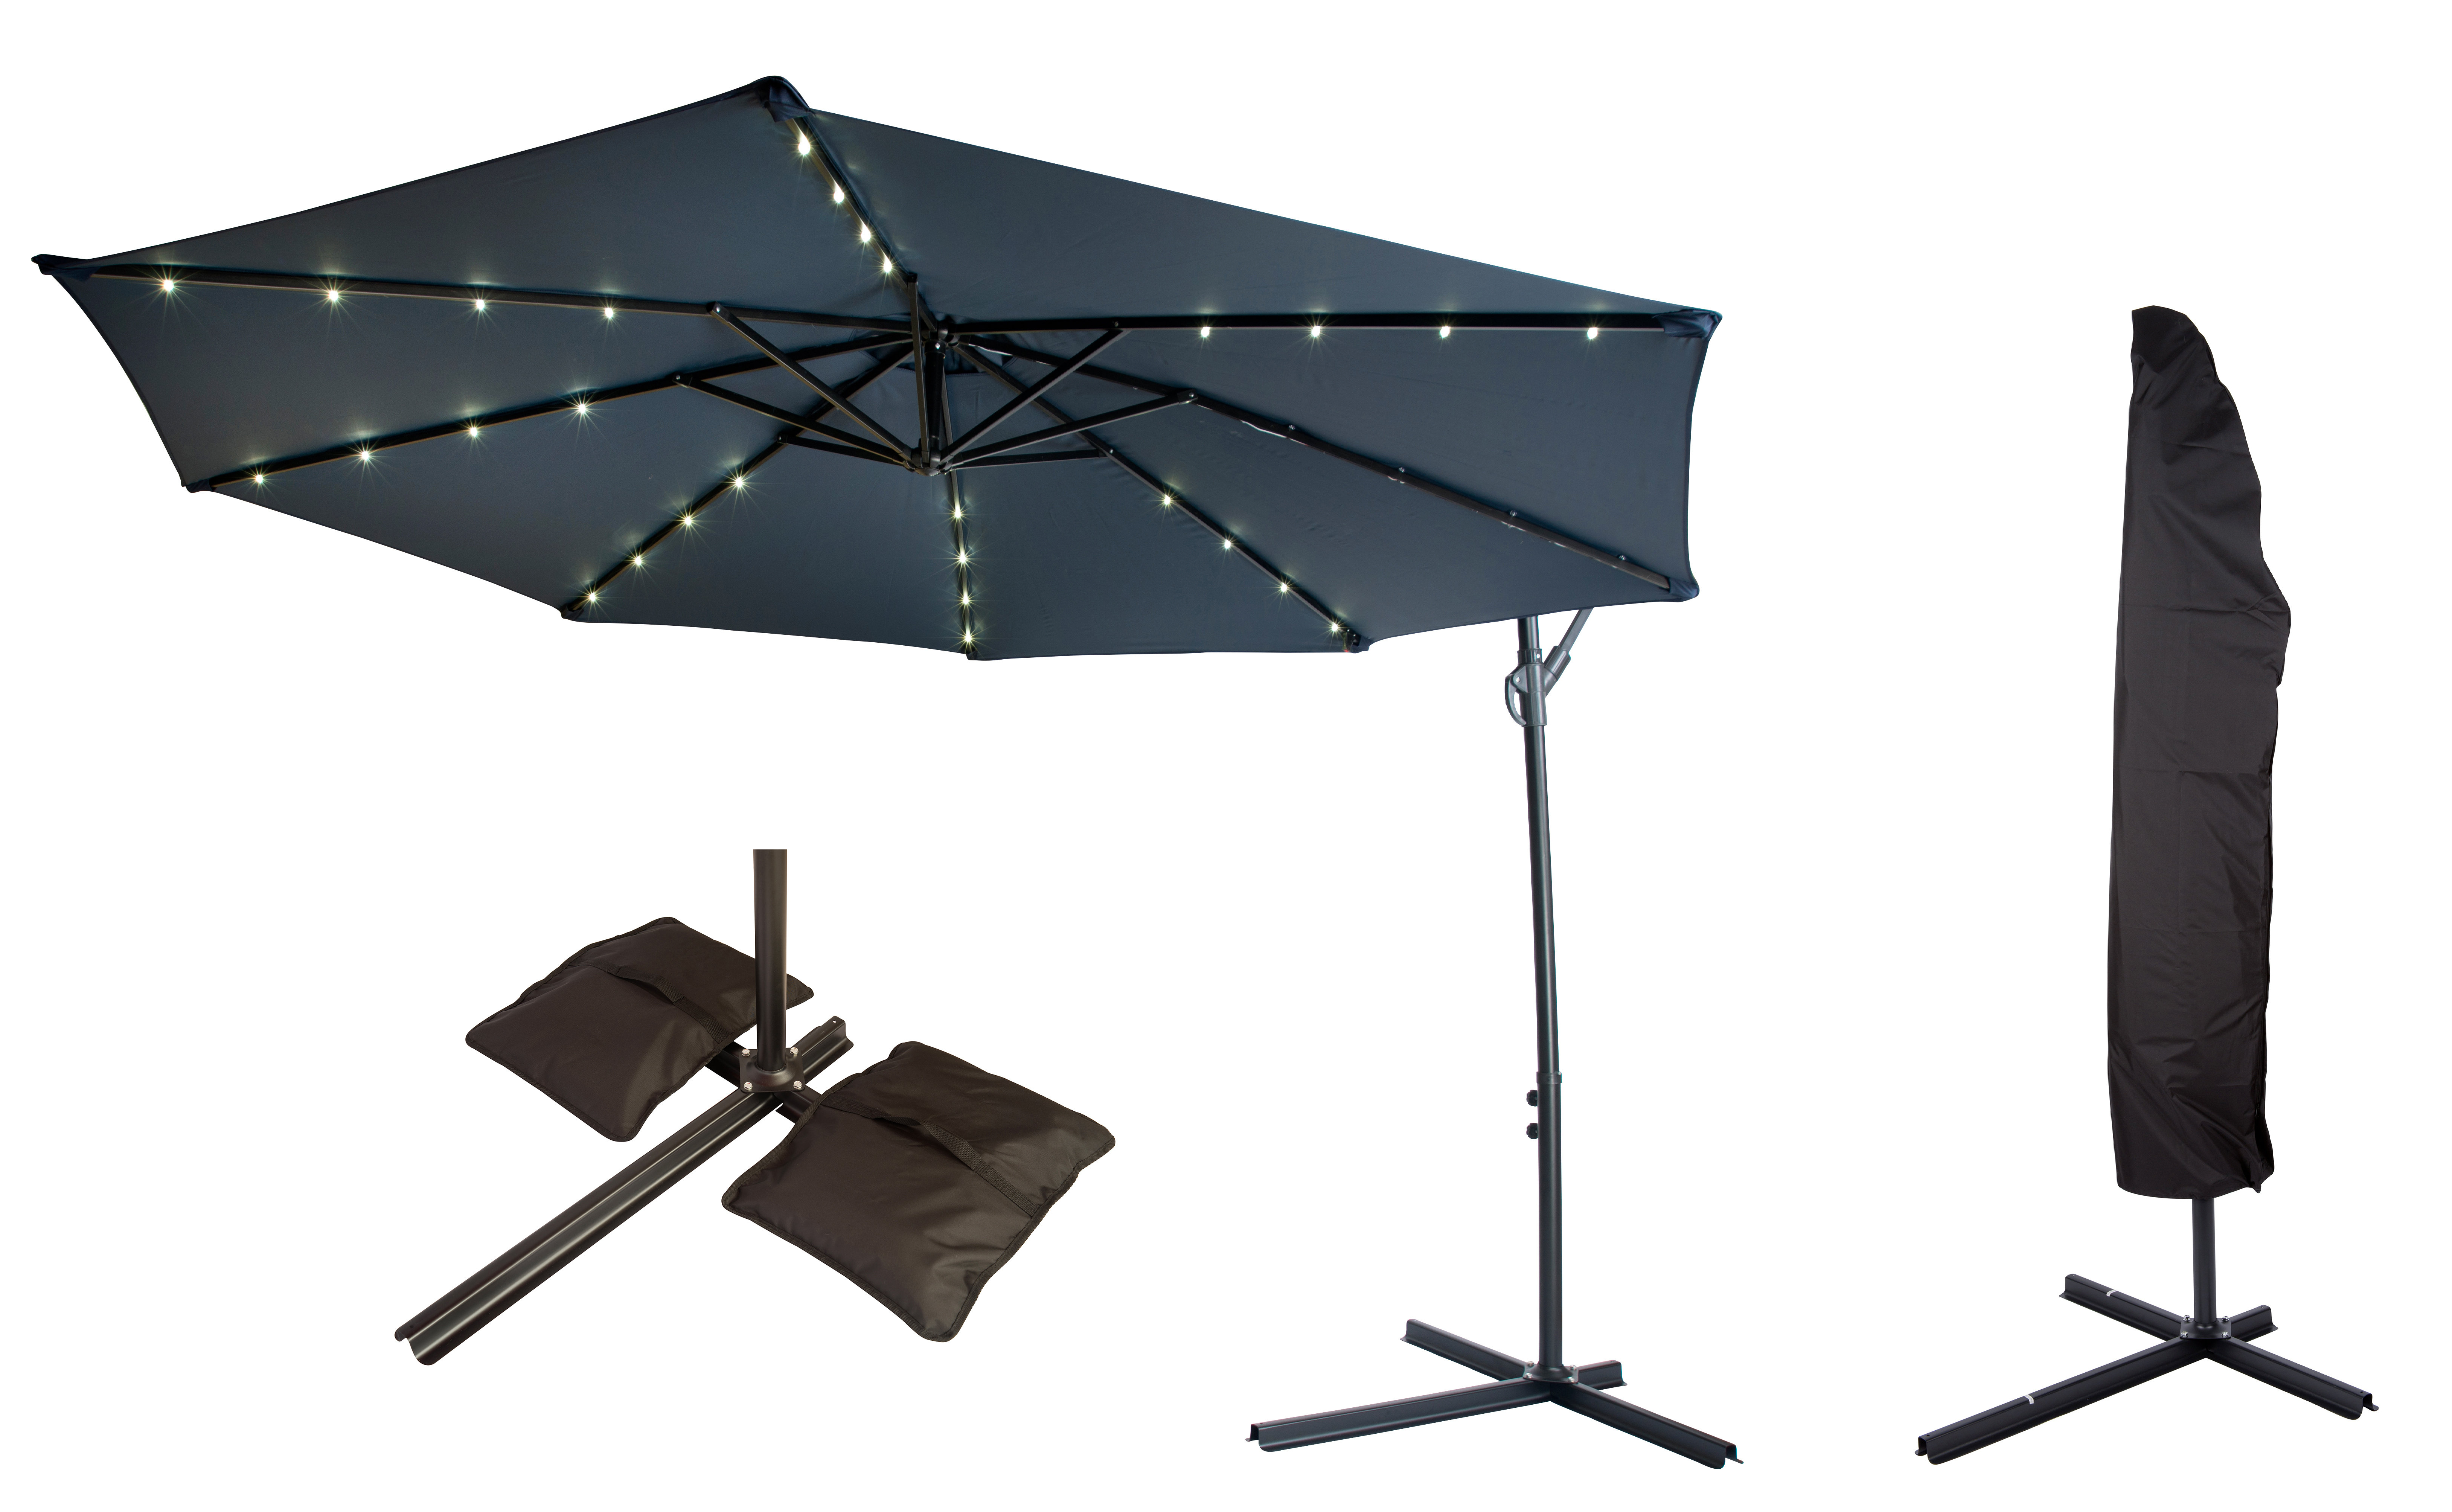 Trendy Offset Patio 10' Cantilever Umbrella With Regard To Dore Patio Cantilever Umbrellas (View 19 of 20)